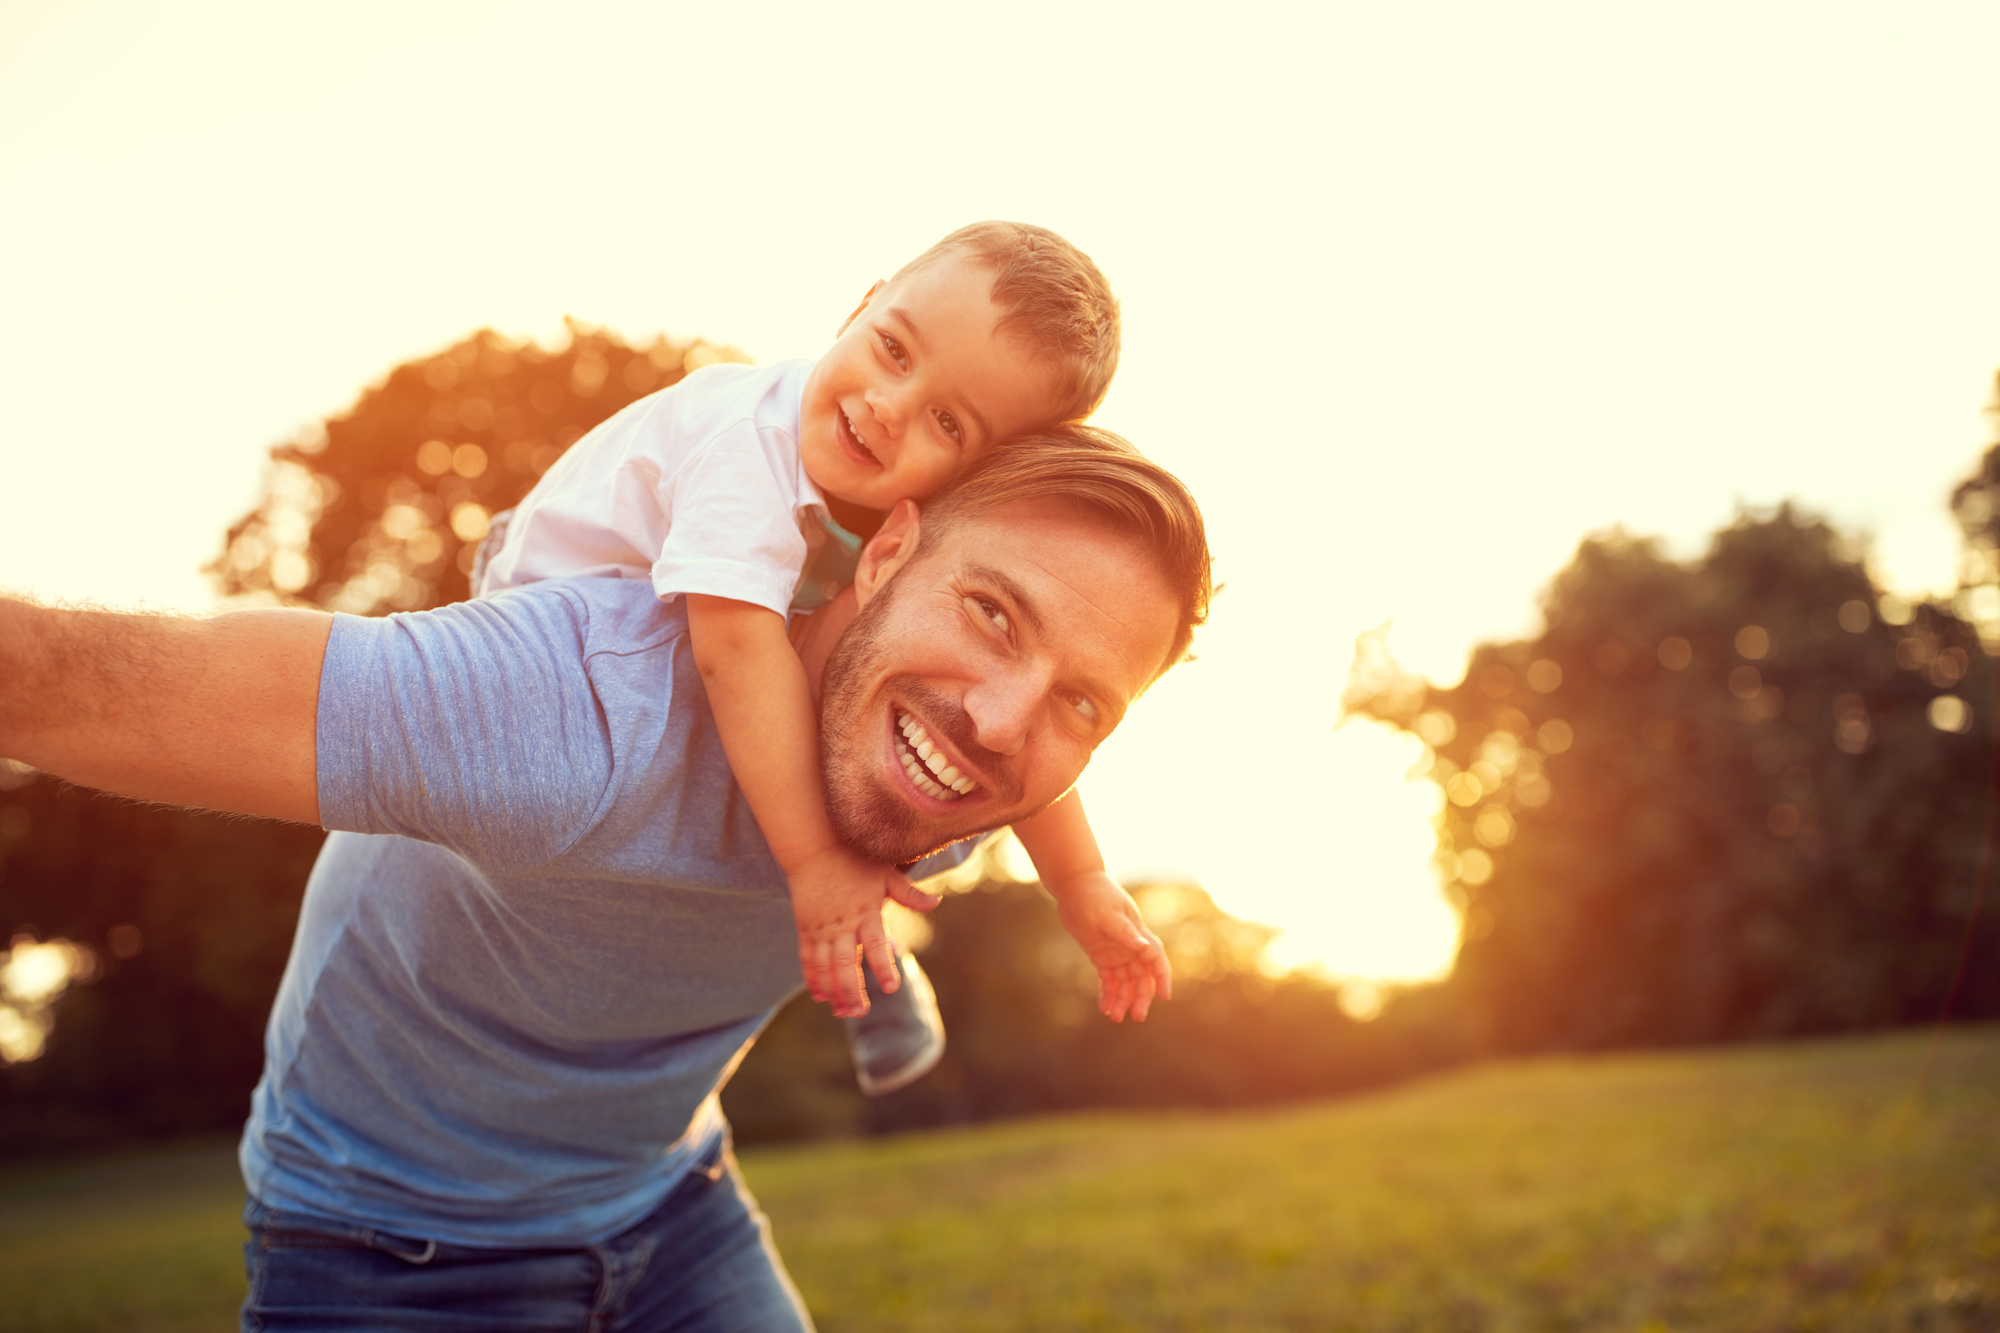 Family Matters: What Are a Father's Rights to His Child?